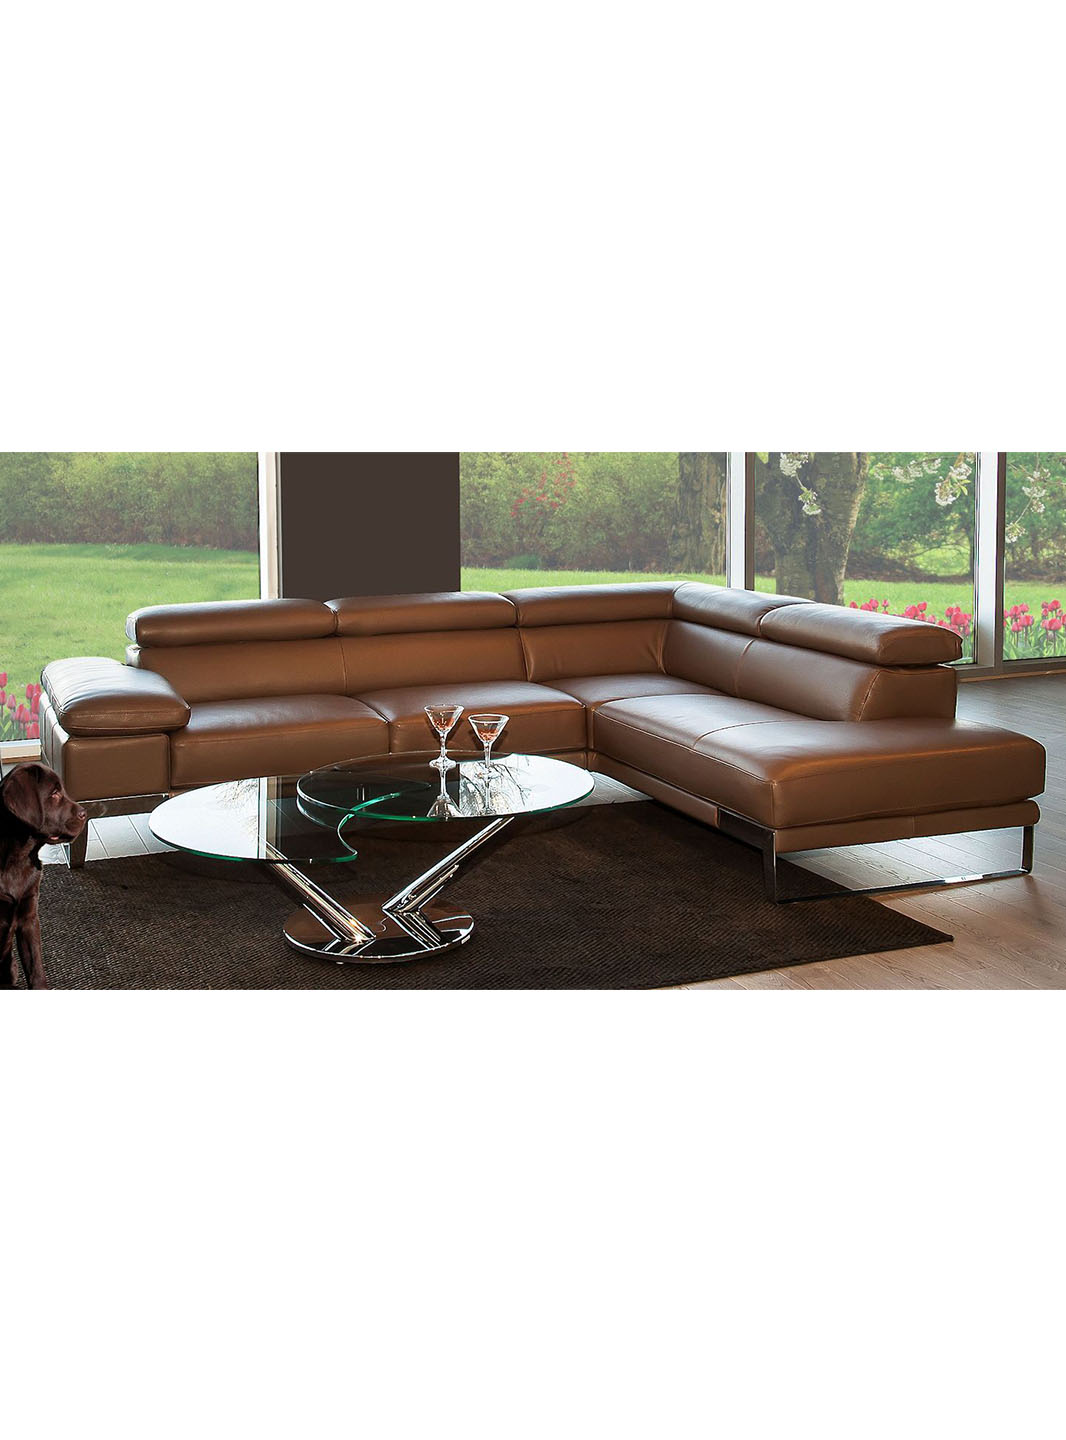 Domus loveseat sofa or sectional mariette clermont for Sofa modulaire liquidation